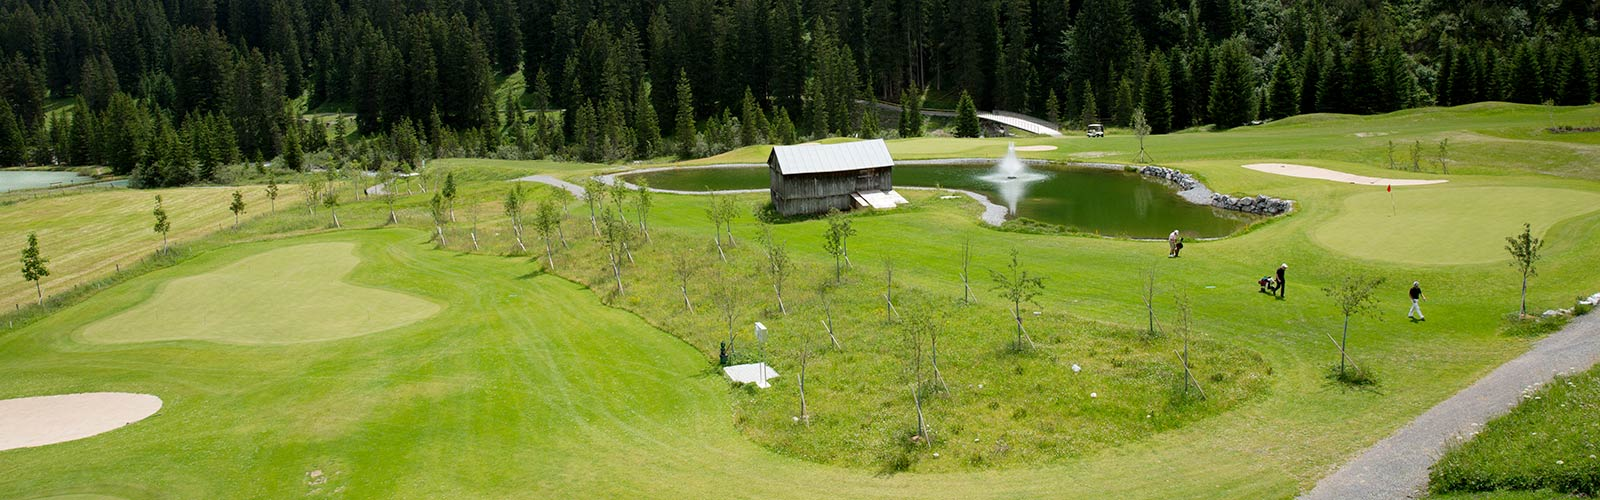 Holiday Membership at the Golf Club Lech